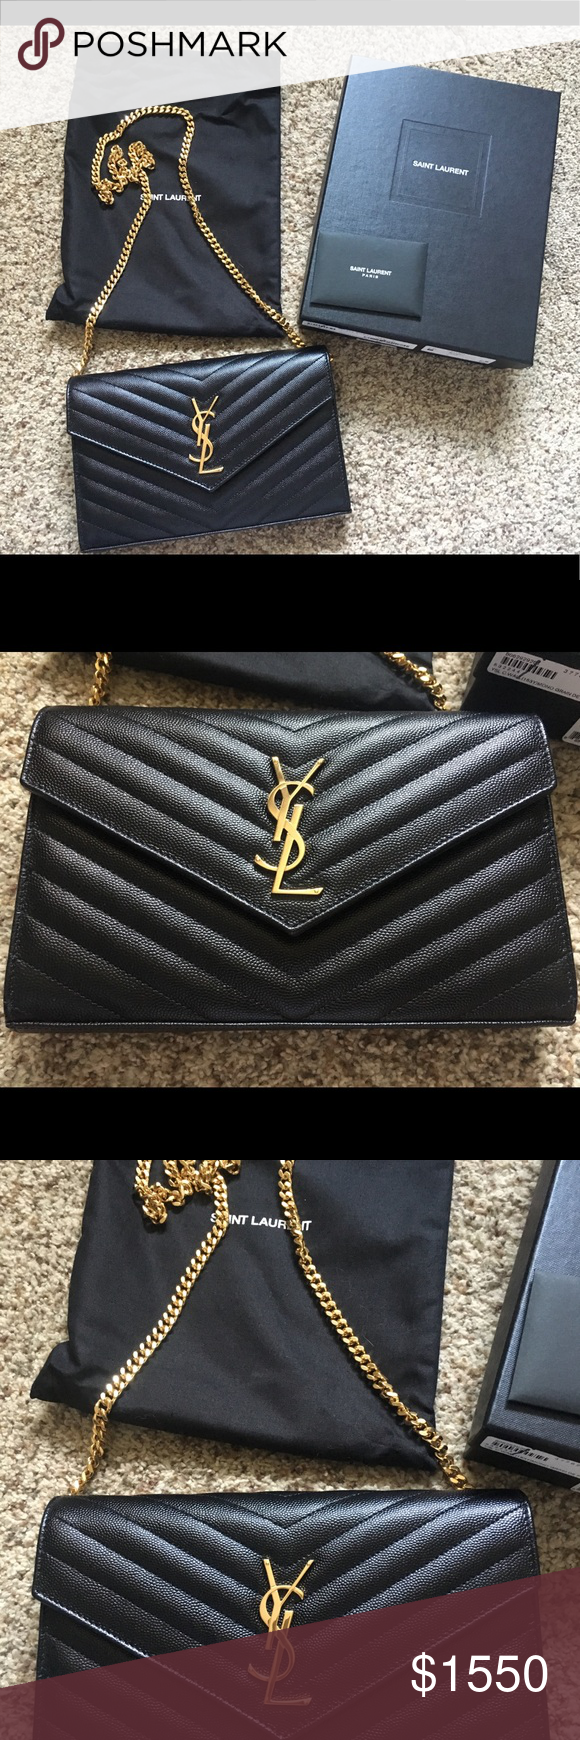 b3e0be988444 YSL Matelasse Monogram Wallet on Chain